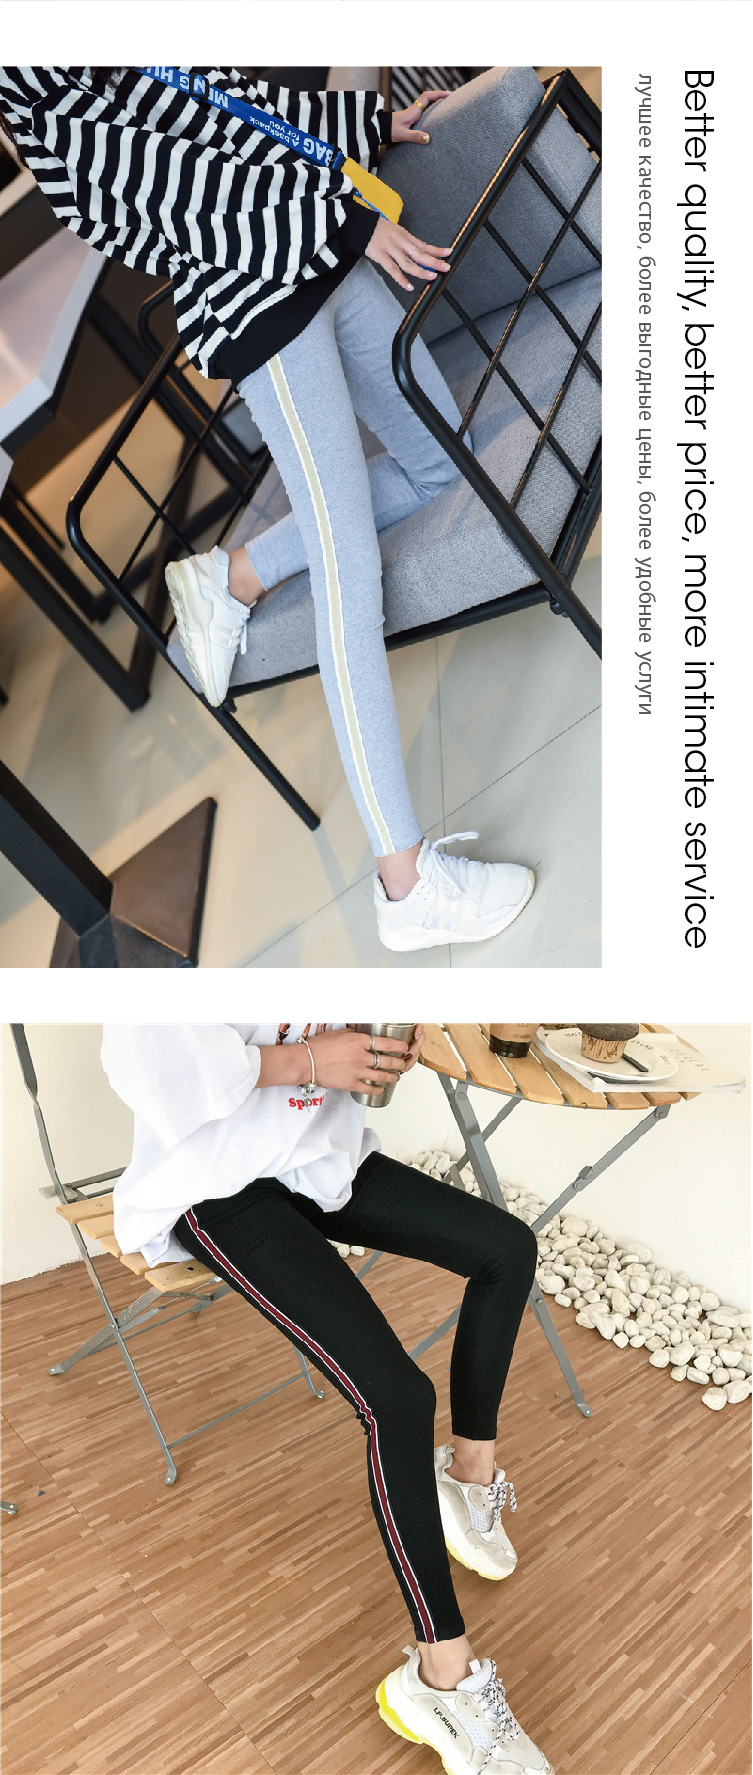 2019 New Fashion Women's Spring And Autumn High Elasticity And Good Quality Slim Fitness Capris Streetwear Leggings Cotton Pants 77